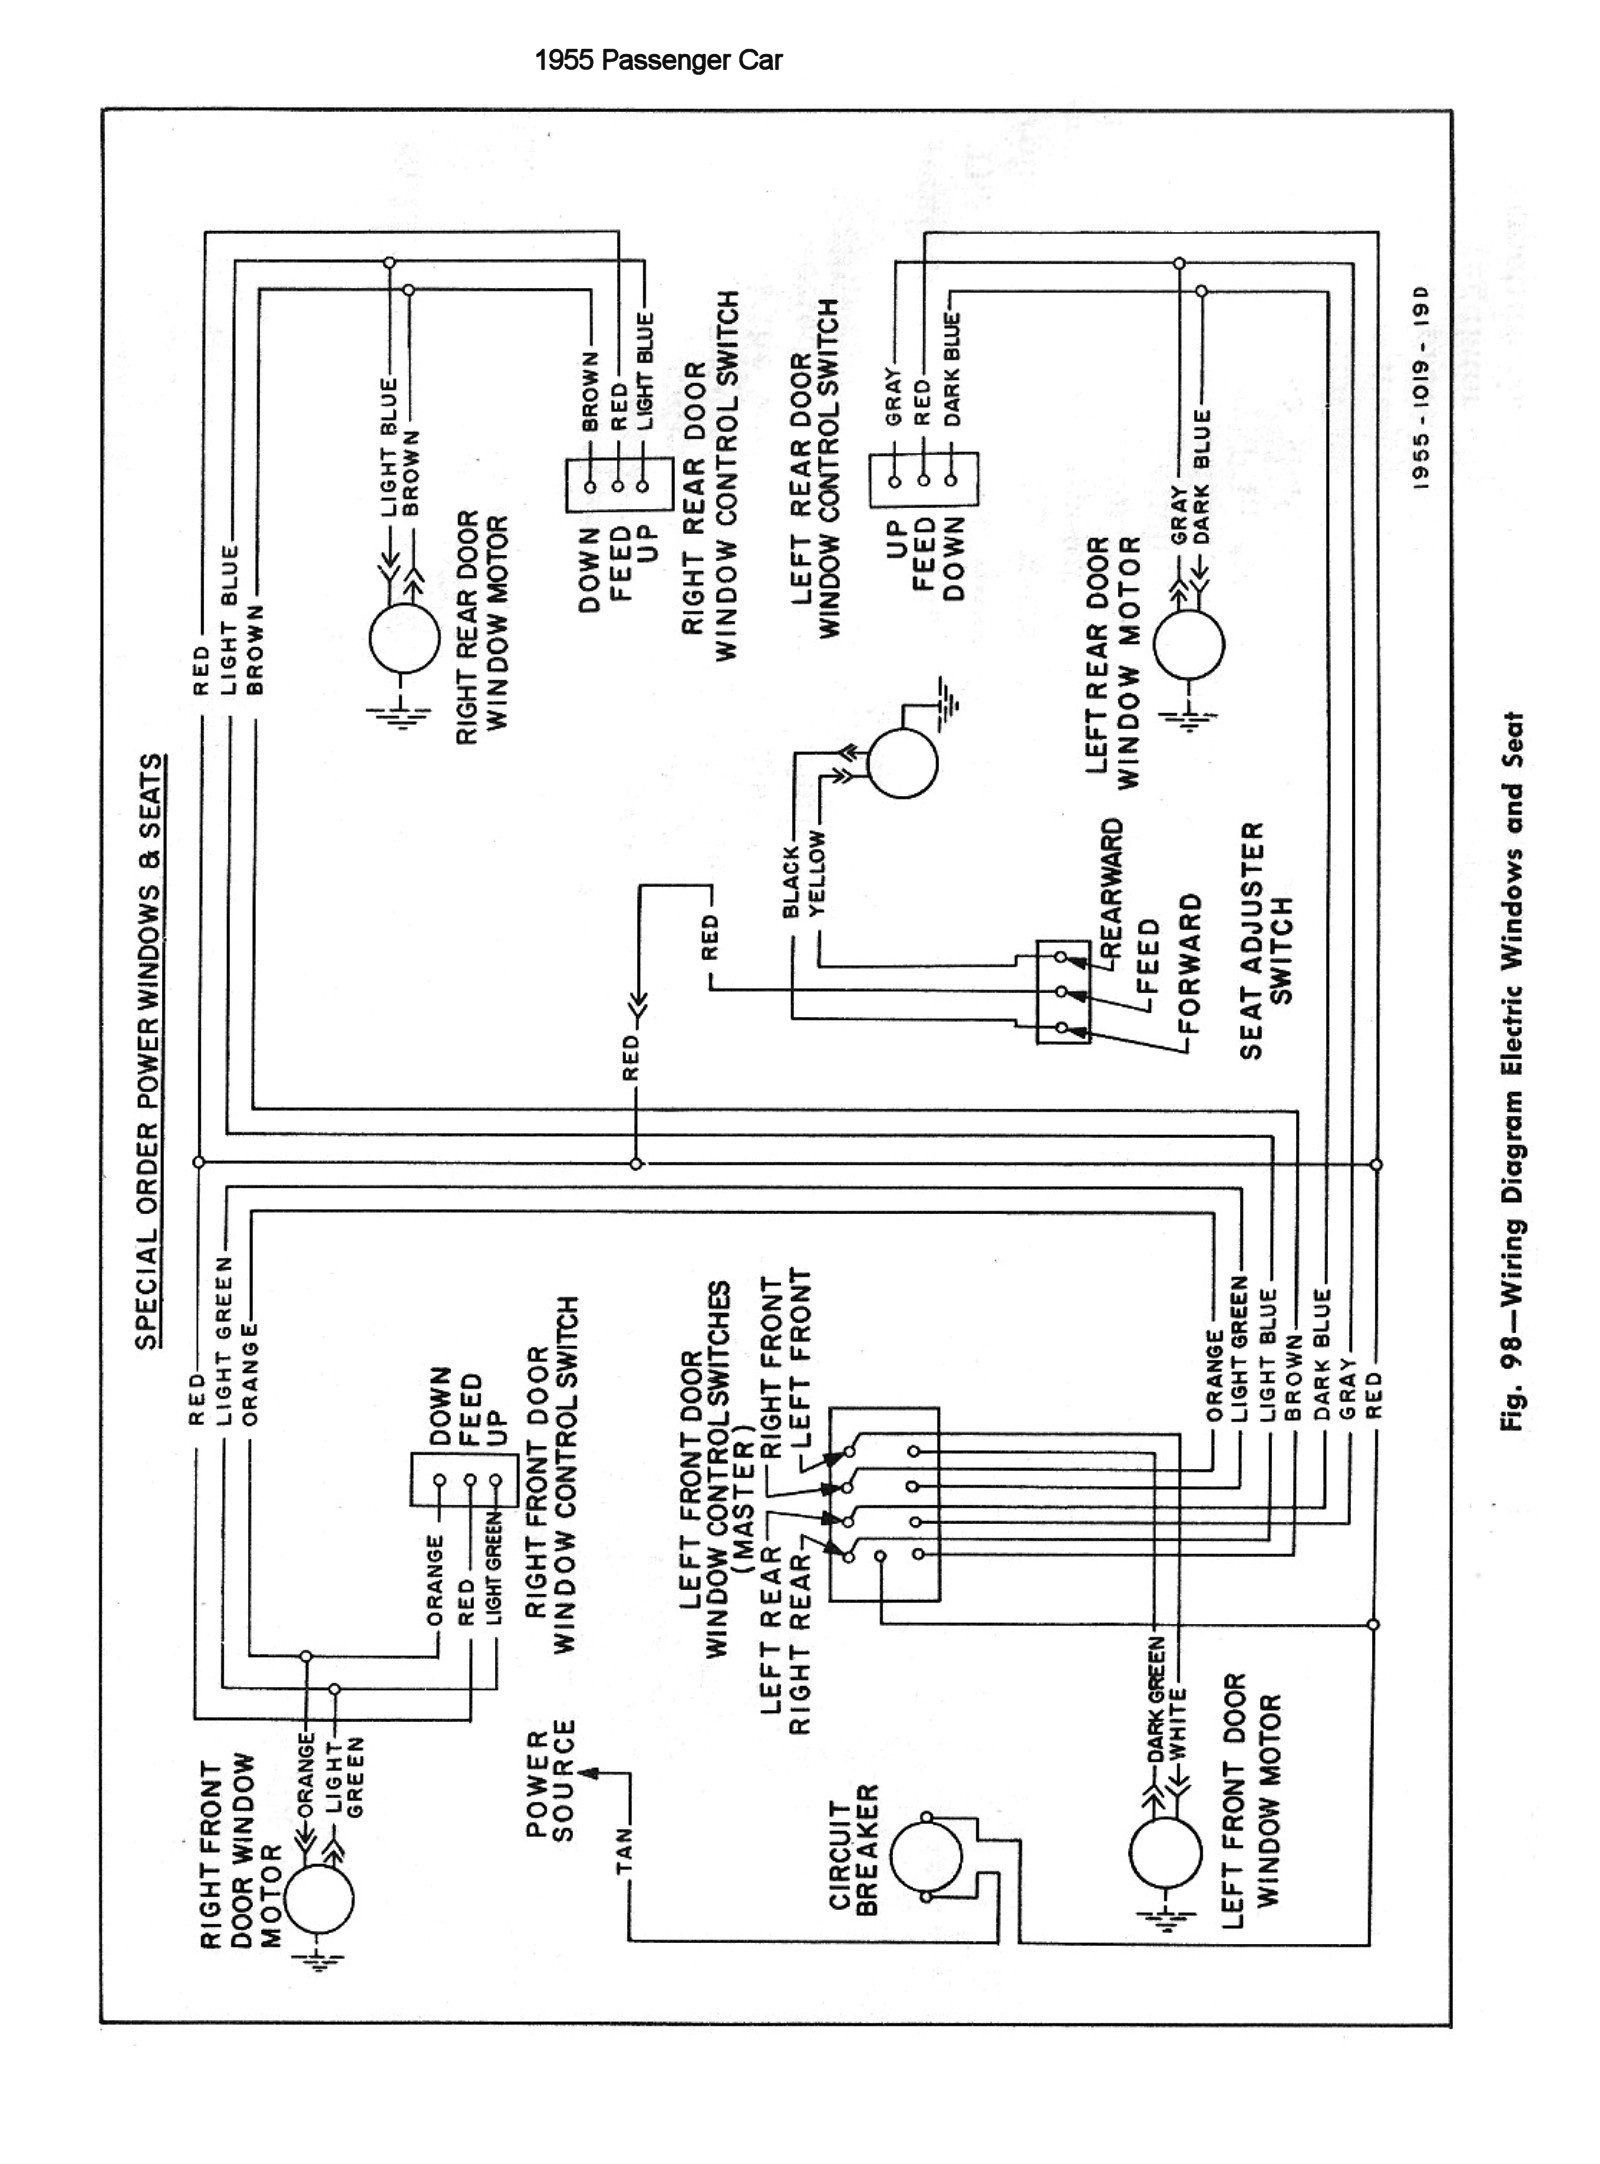 medium resolution of 1955 chevy turn signal wiring diagram wiringdiagram org rh pinterest com 55 chevy truck turn signal